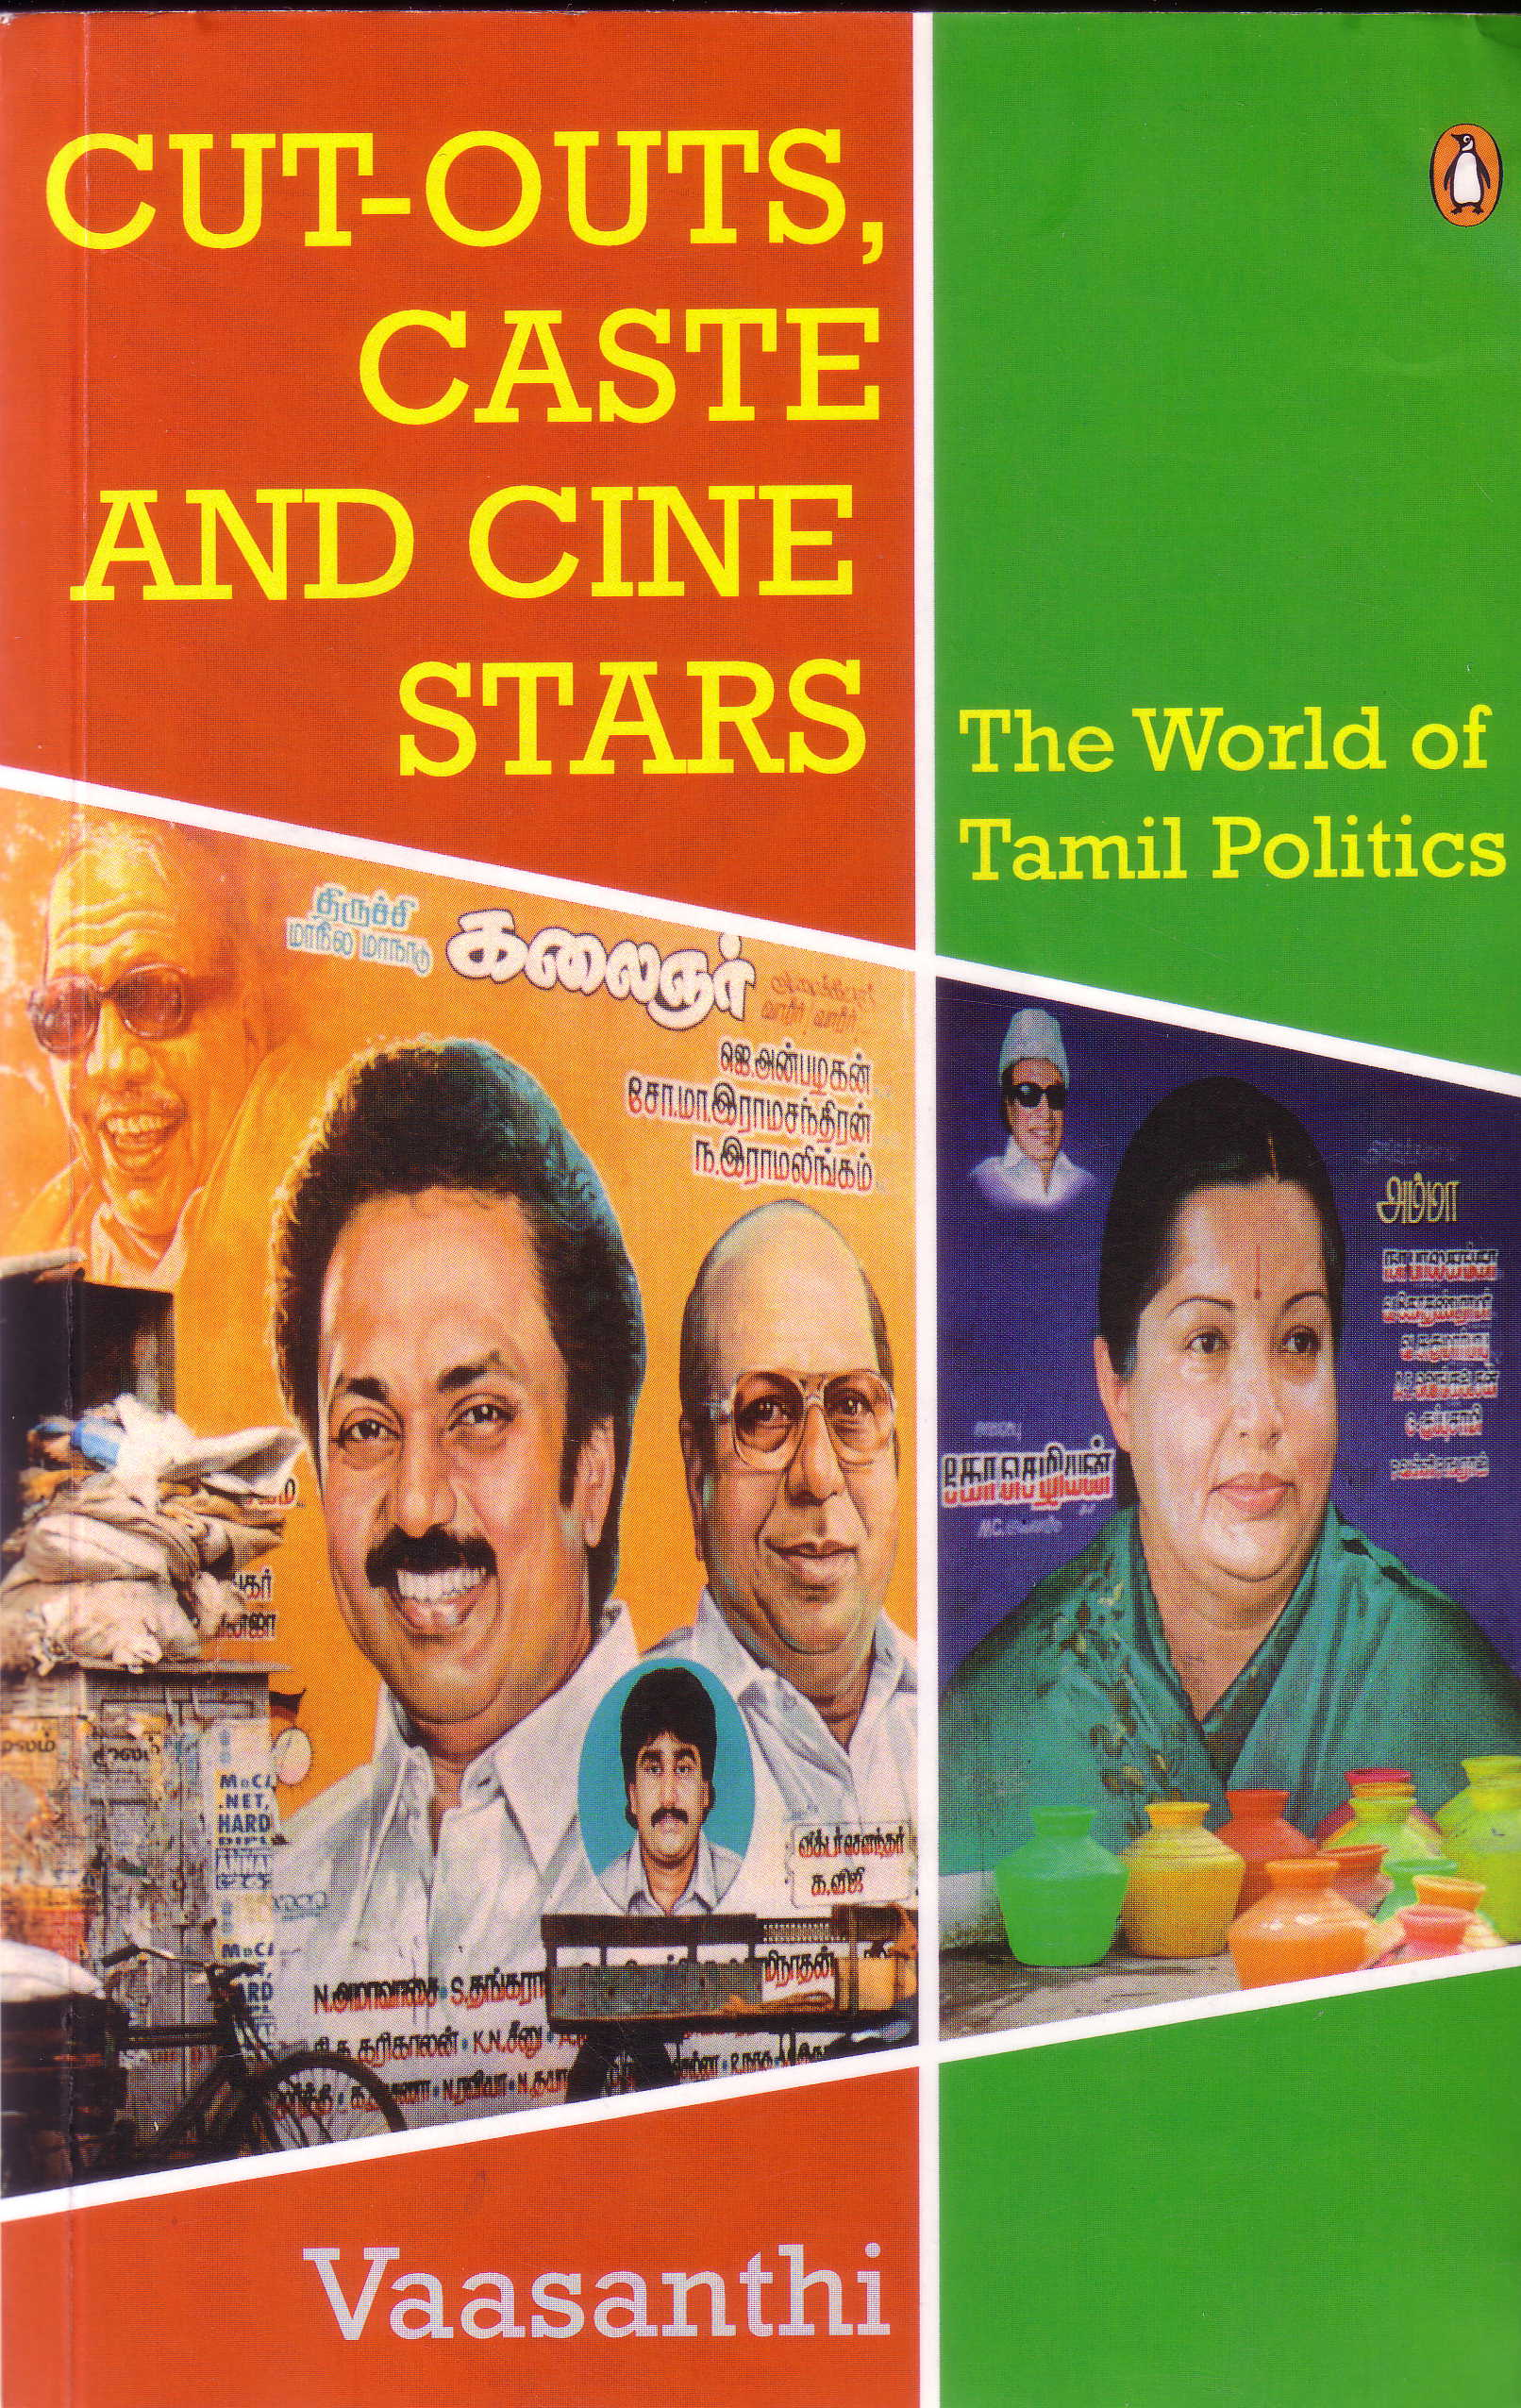 vaasanthi-book-cut-outs-caste-cover